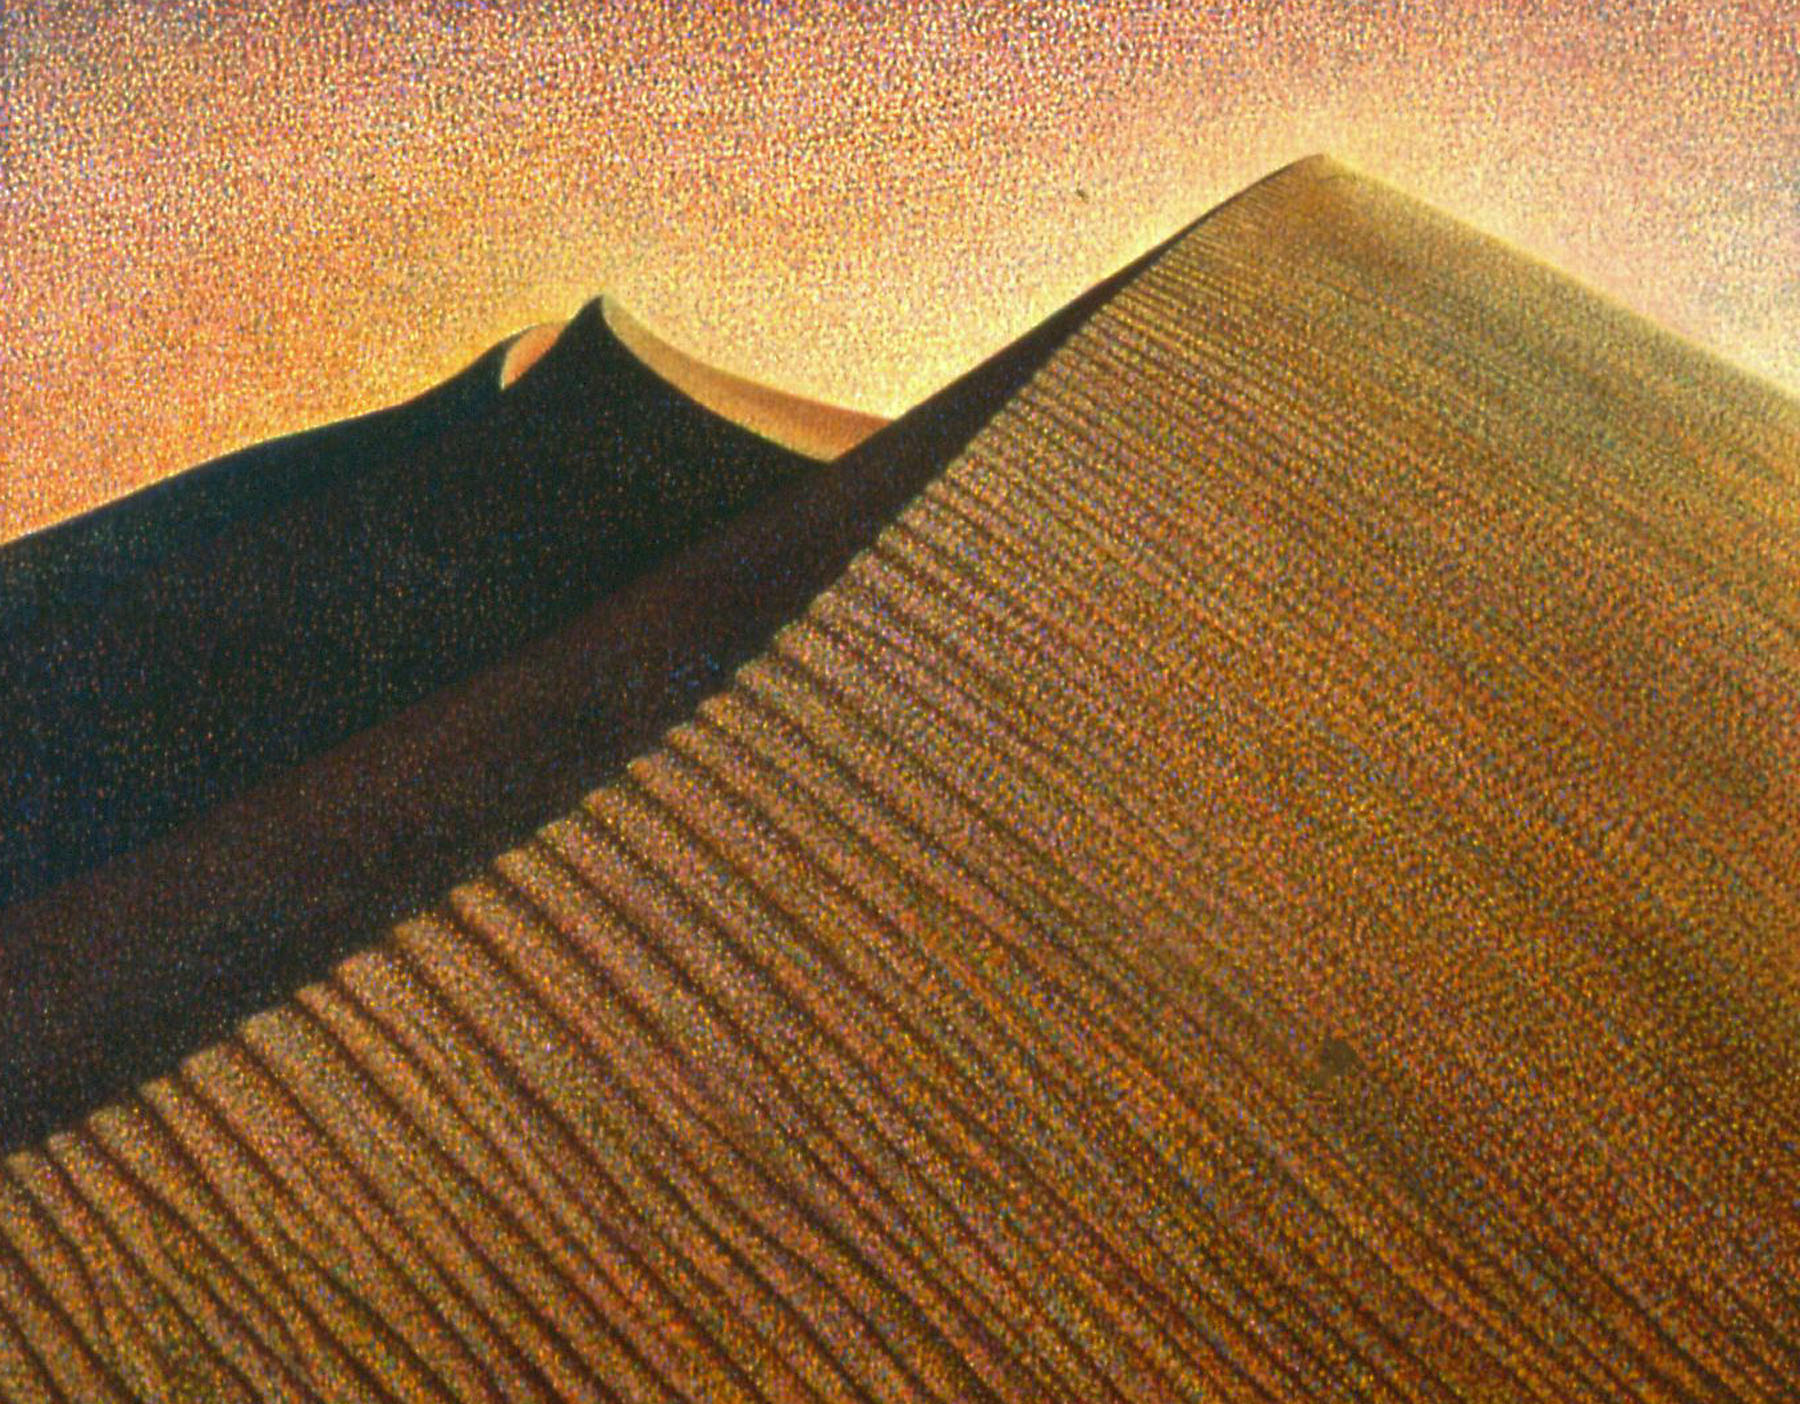 21 Myth of egyptian dunes